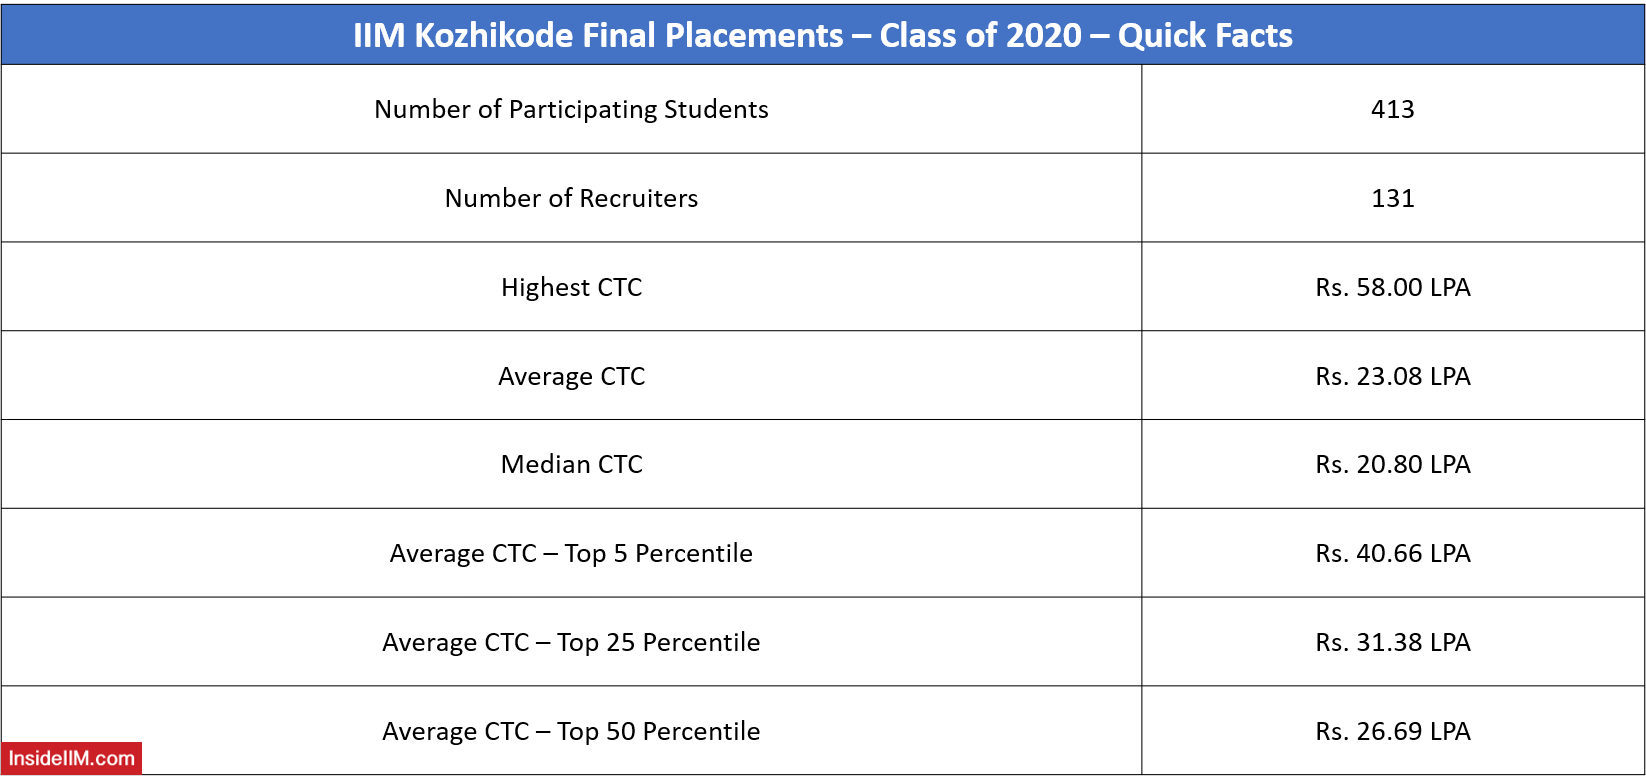 IIM Kozhikode Final Placements 2020 - Important Highlights